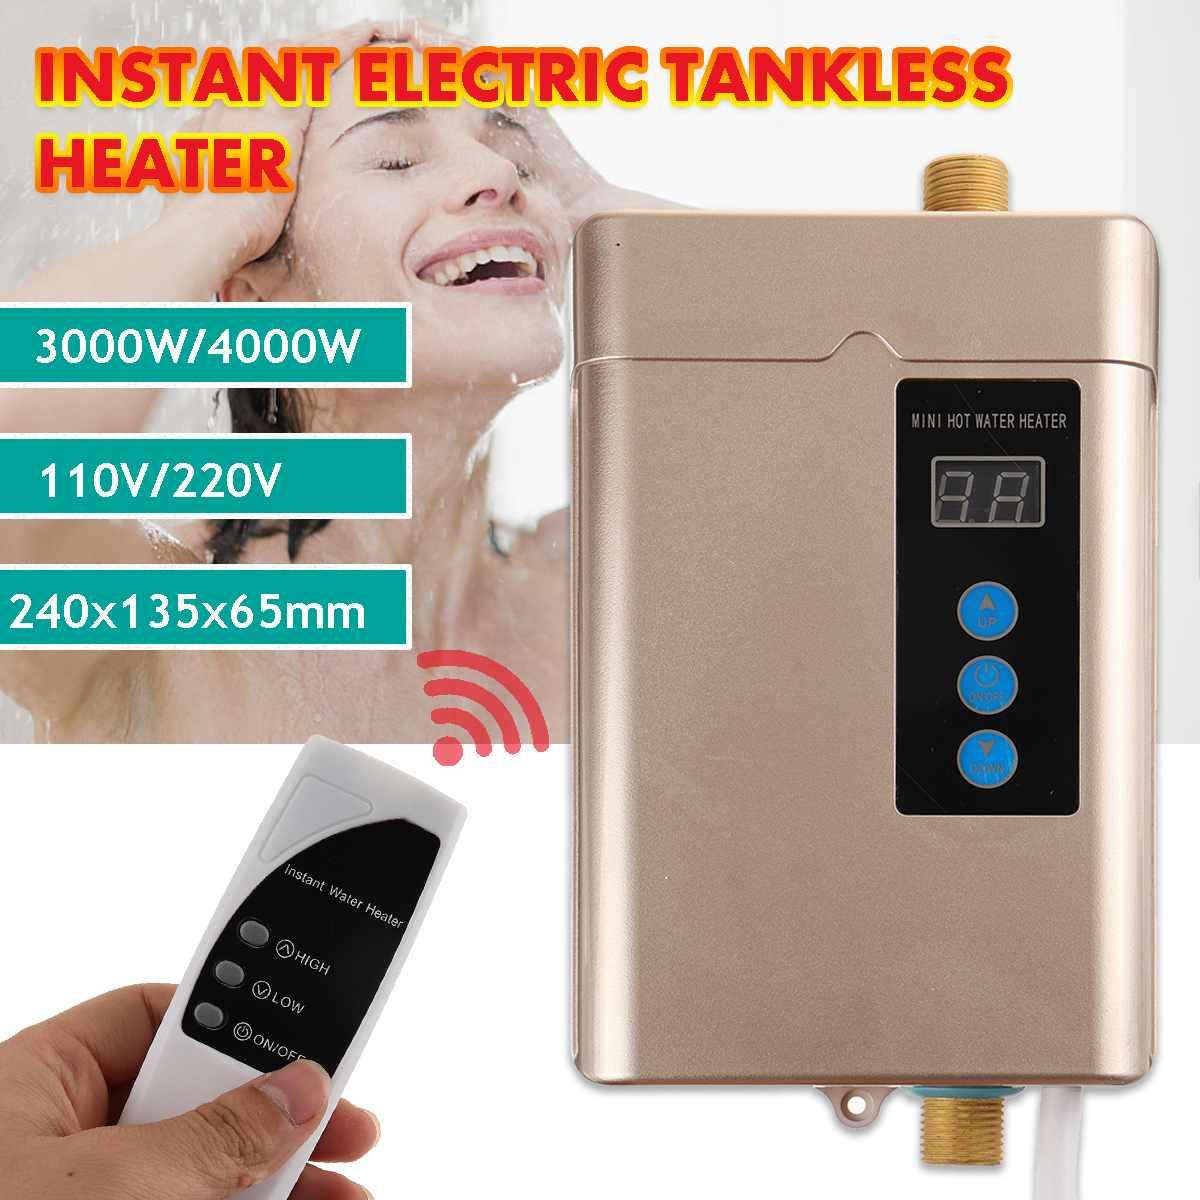 tankless-mini-instant-electric-hot-water-heater-110-220v-remote-control-kitchen-bathroom-shower-bath-electric-water-heater